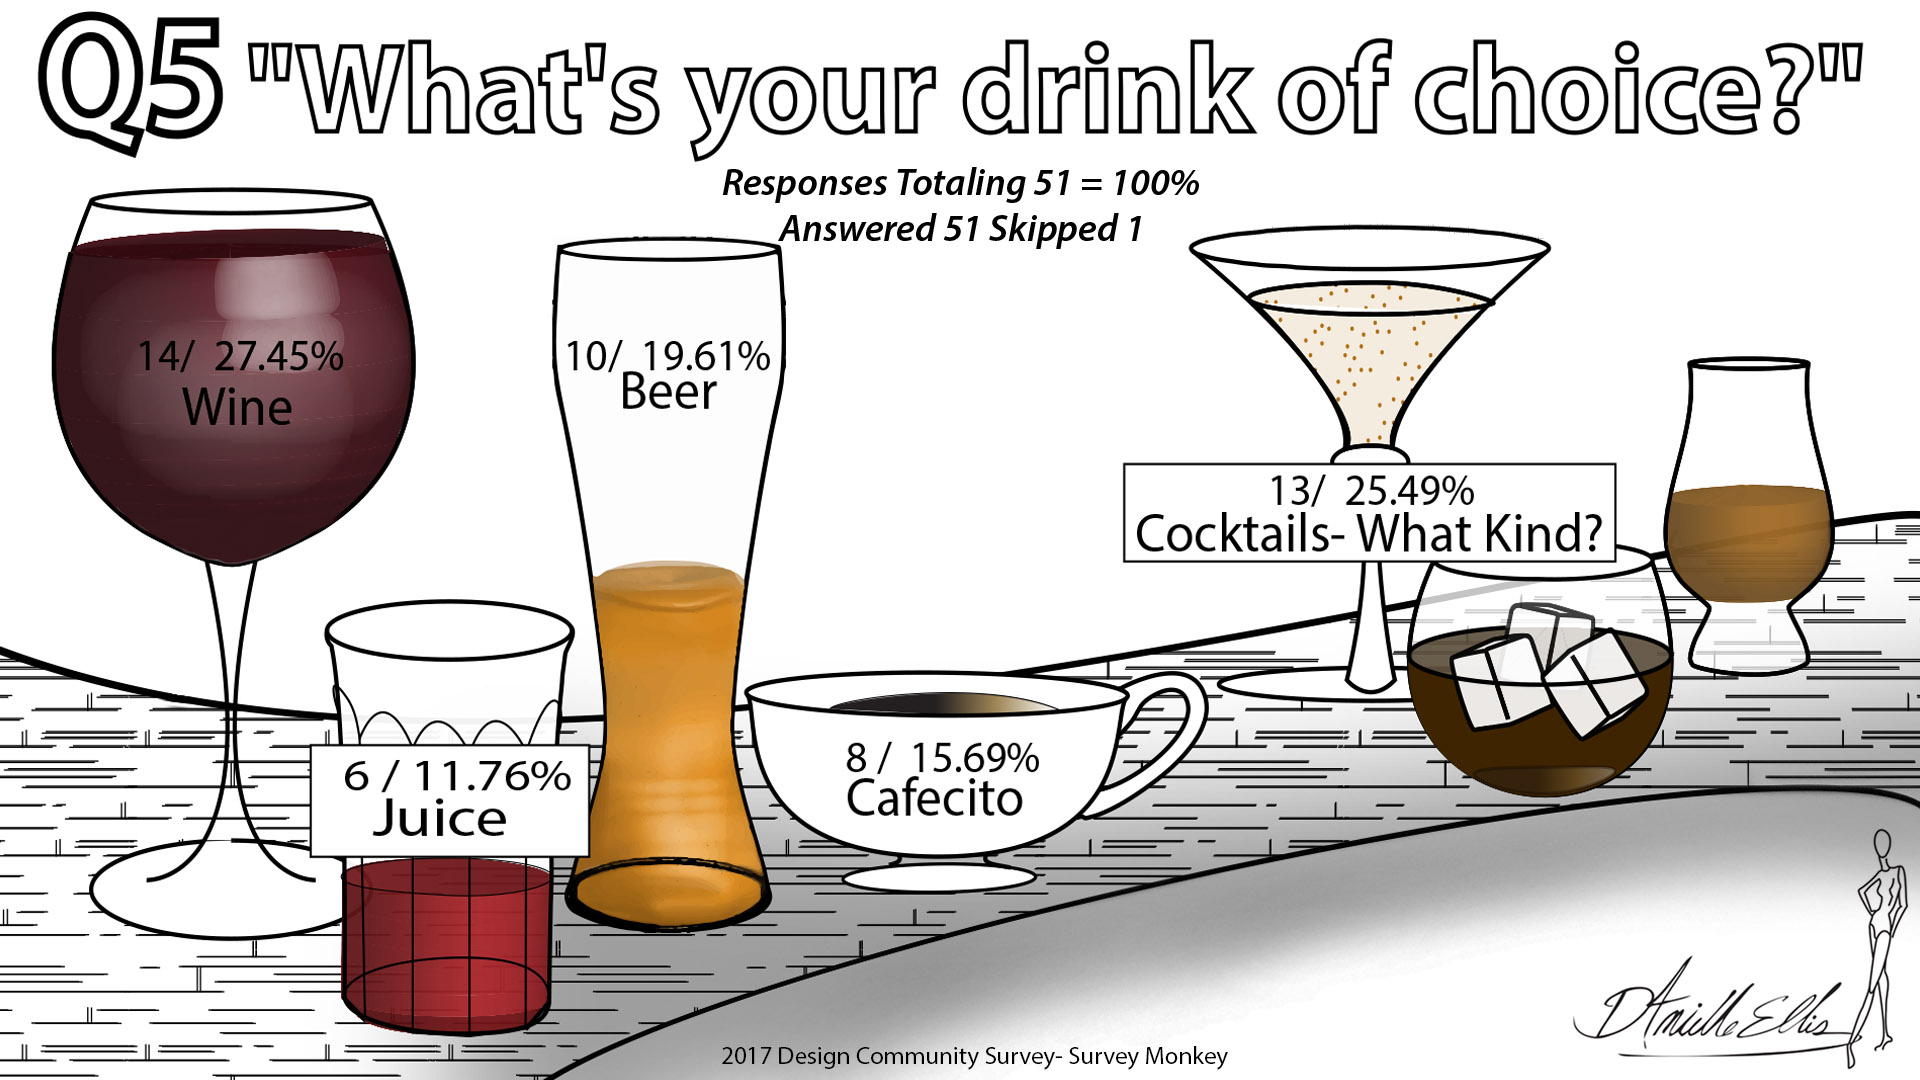 What's your drink of choice? Infographic by Danielle Ellis